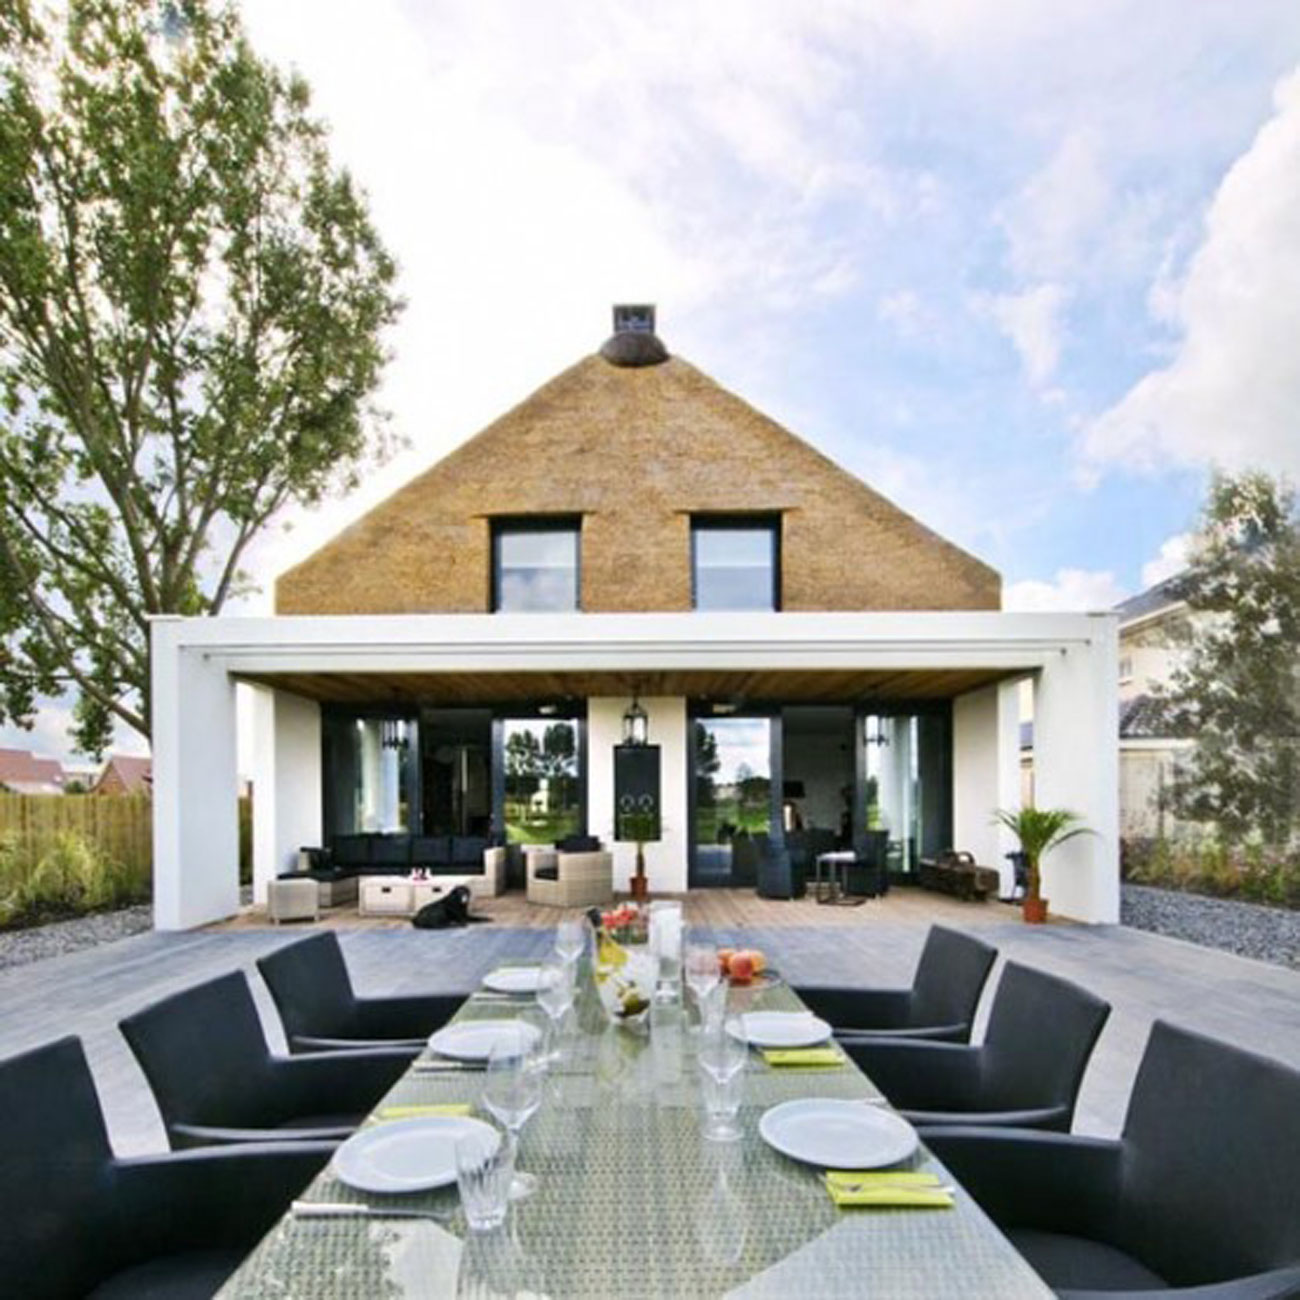 Rustic Style For A Modern House Design From Arjen Reas Outdoor Dining Table Viahouse Com